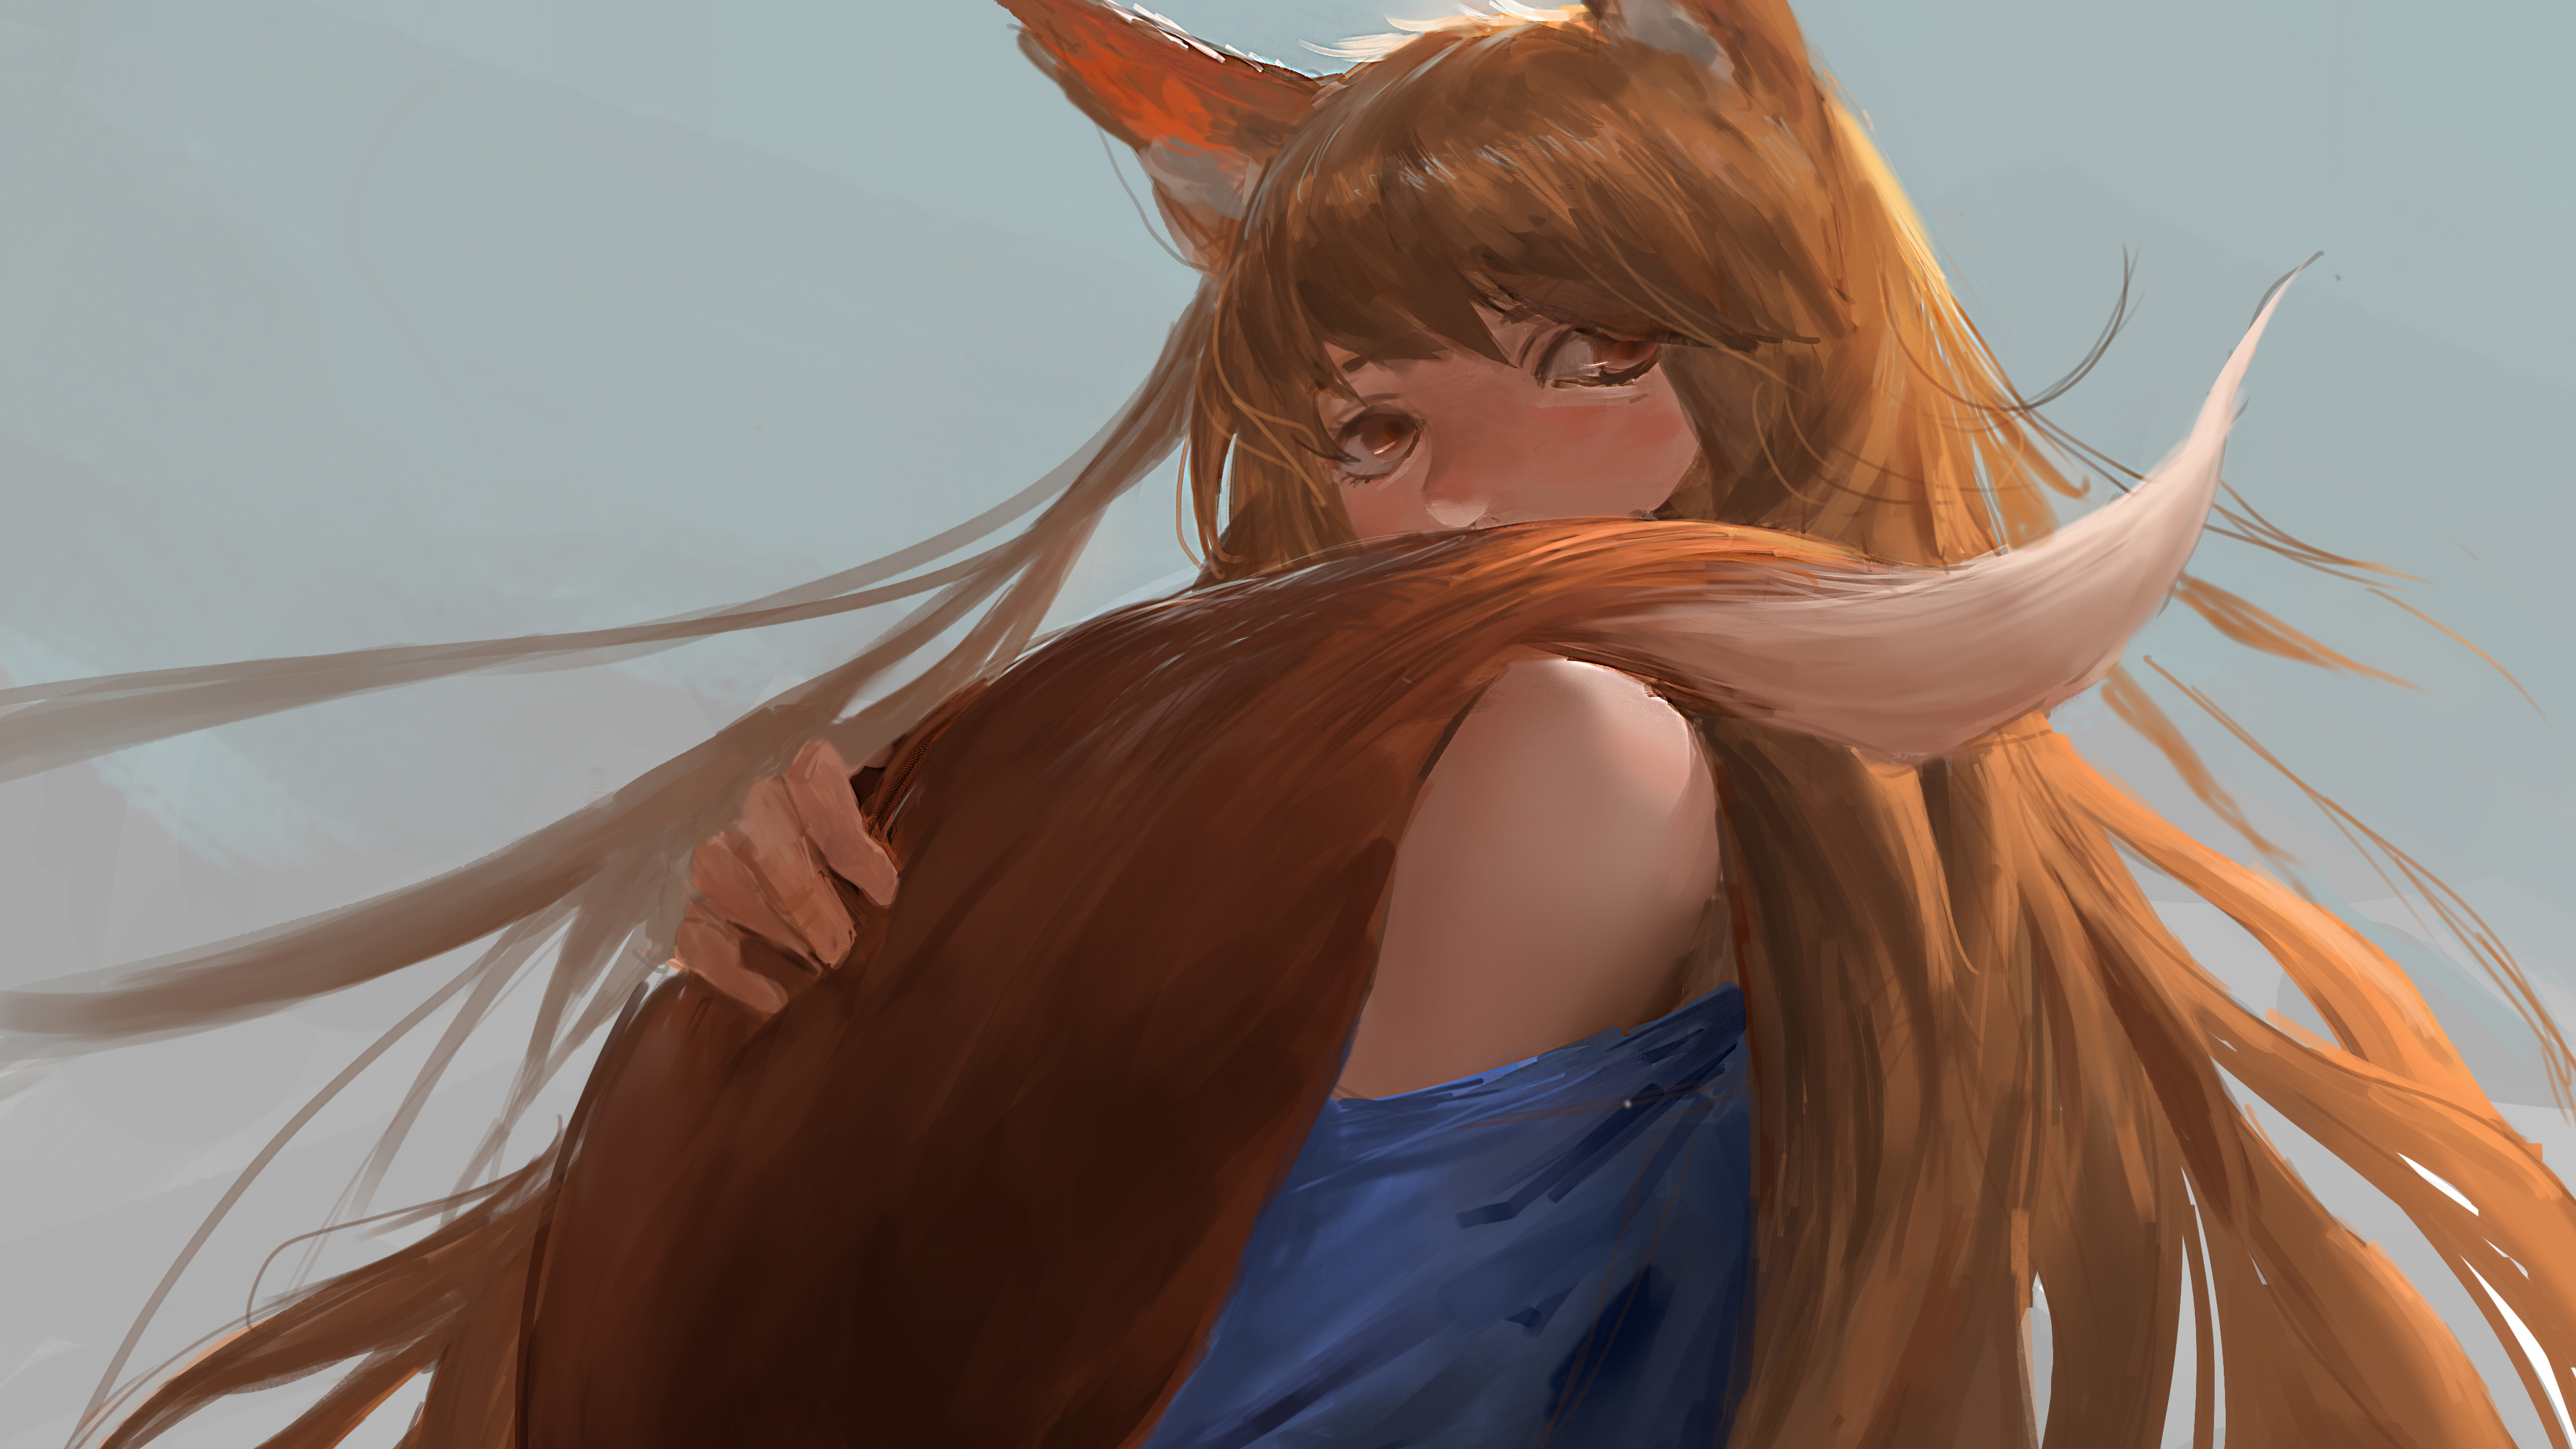 Wallpaper 4k Spice And Wolf Anime 4k 4k Wallpapers Anime